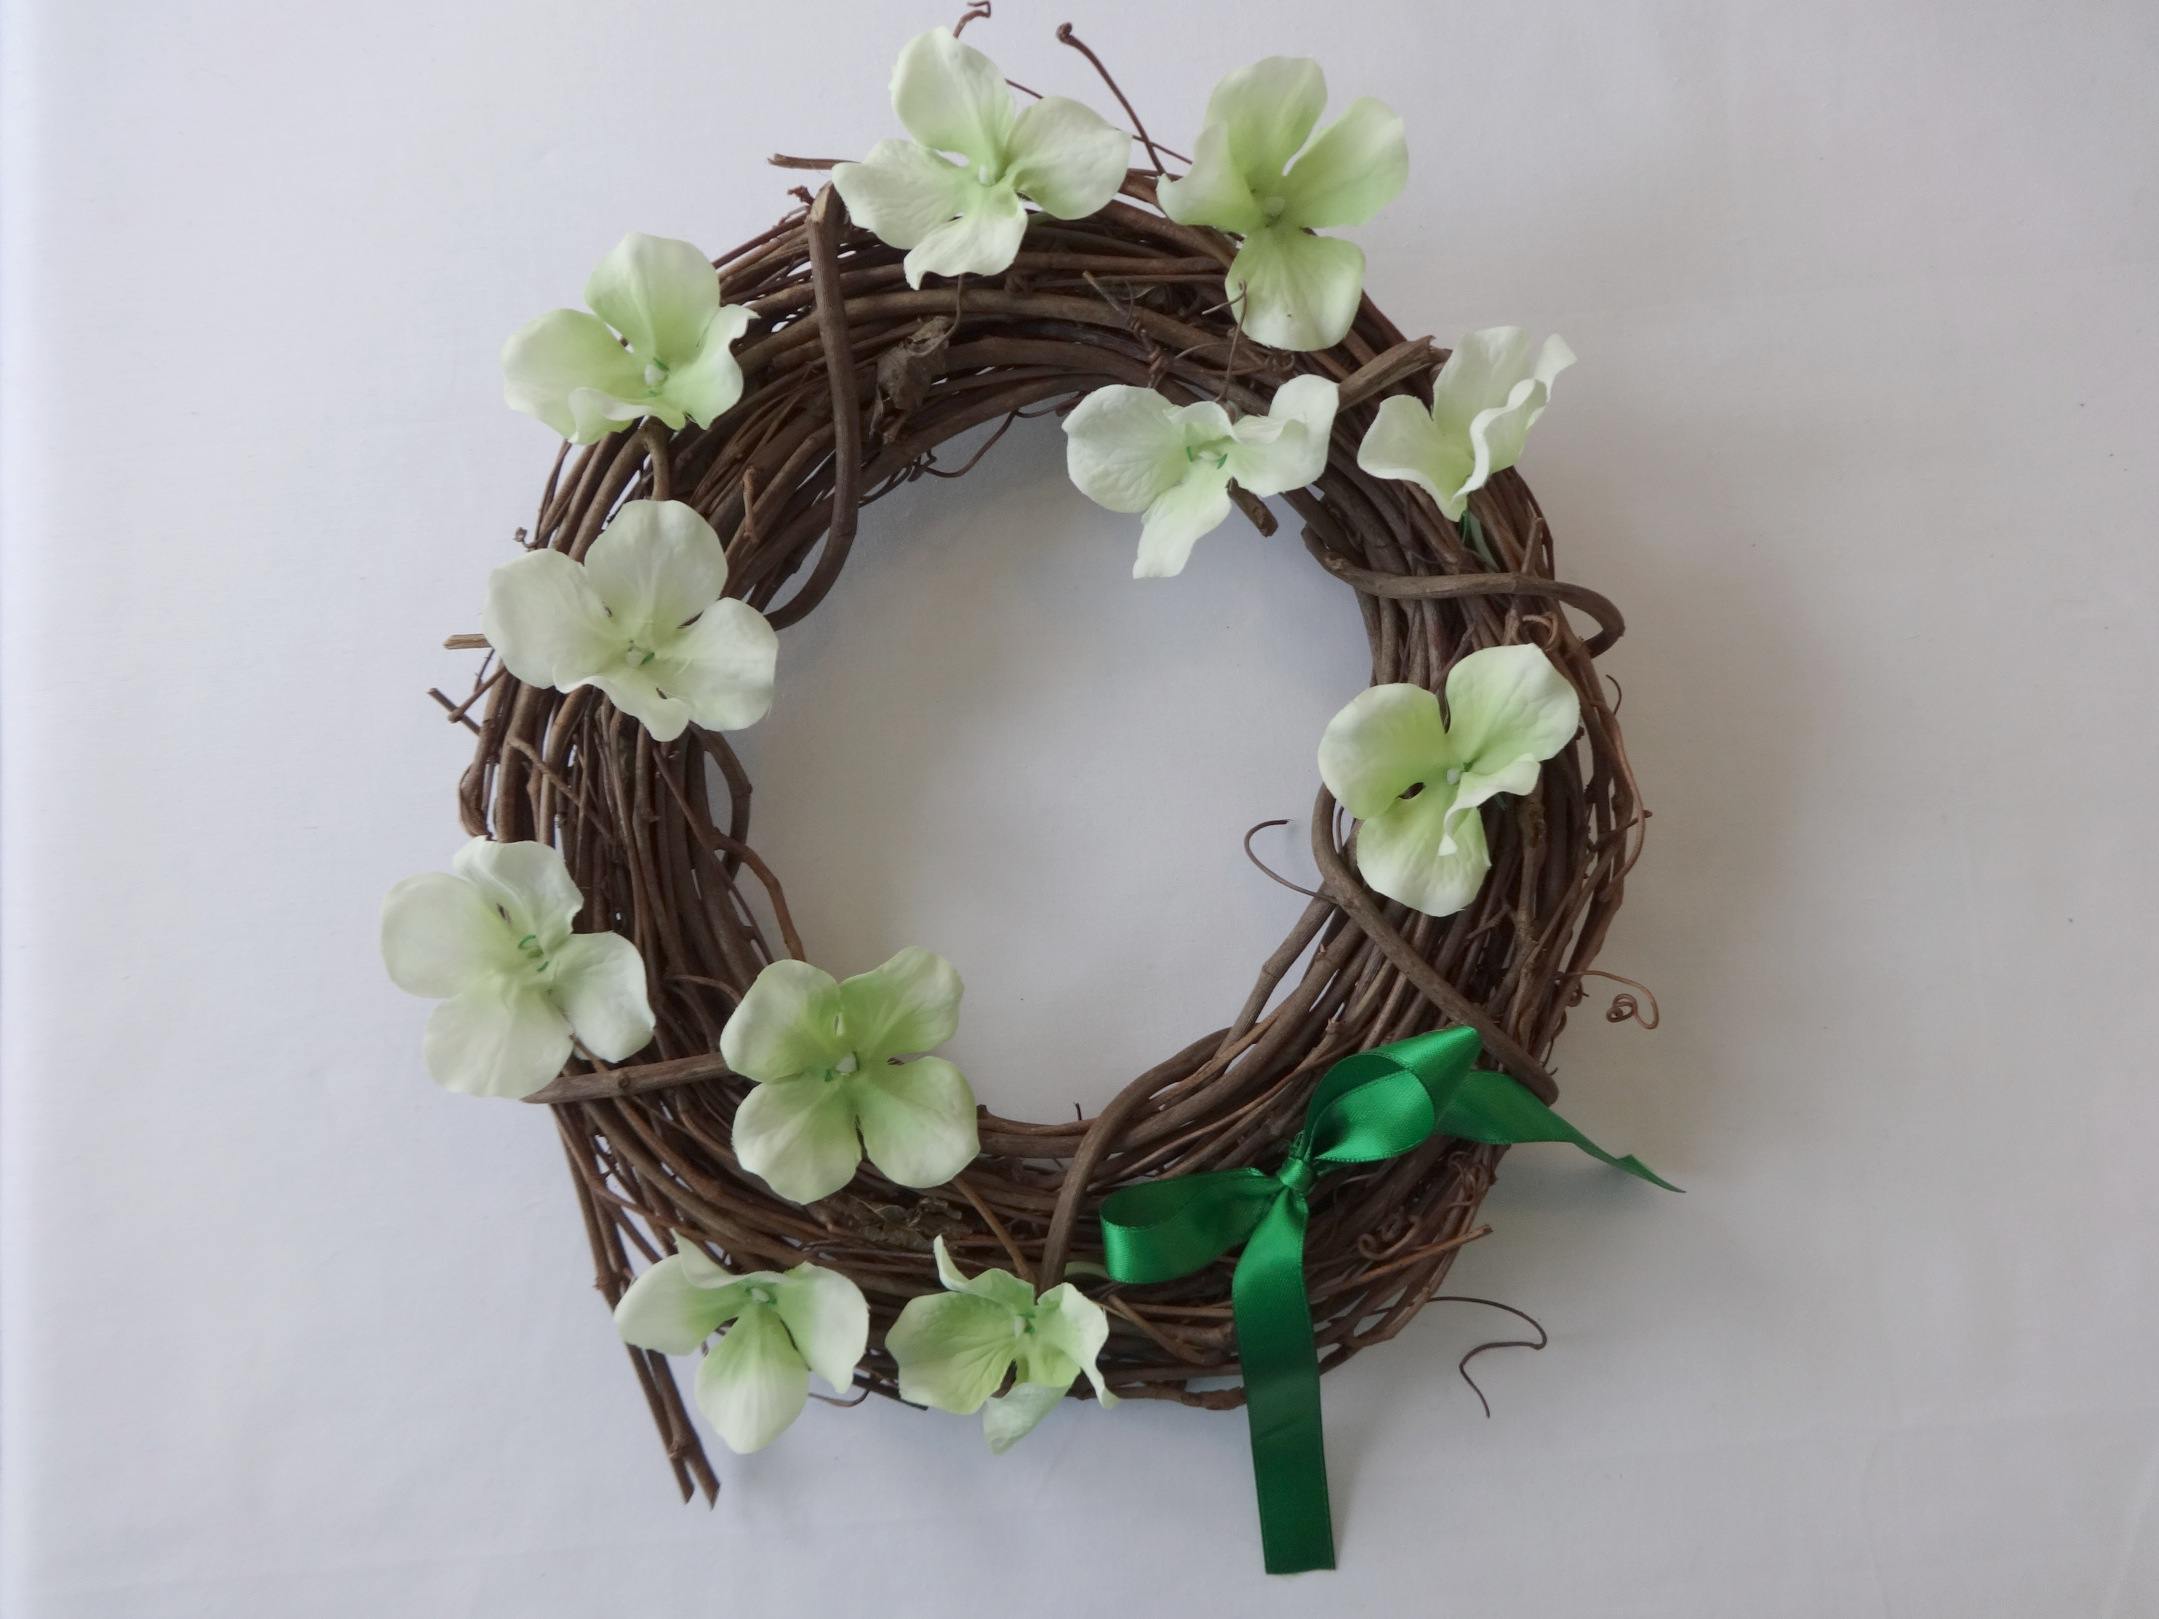 A springtime wreath for St. Patrick's Day? D-I-Why not?